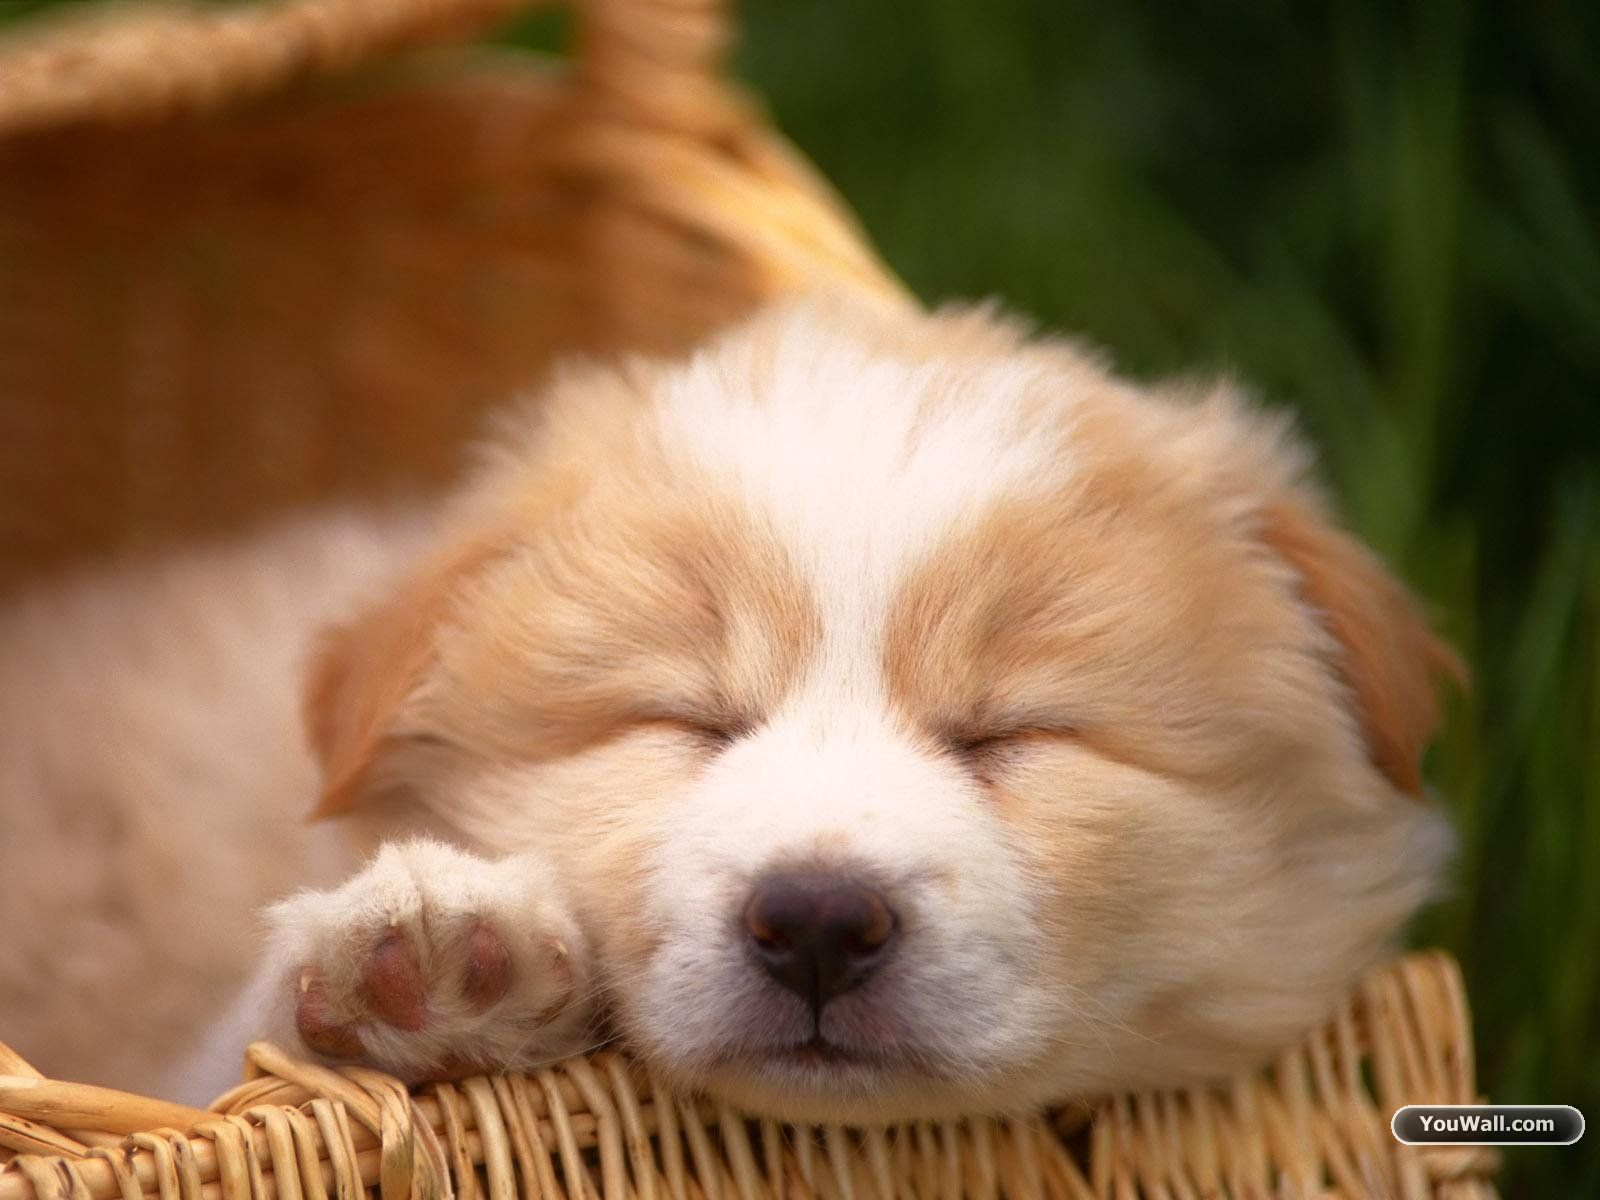 Cute Dog Wallpapers Android Apps on Google Play | HD Wallpapers